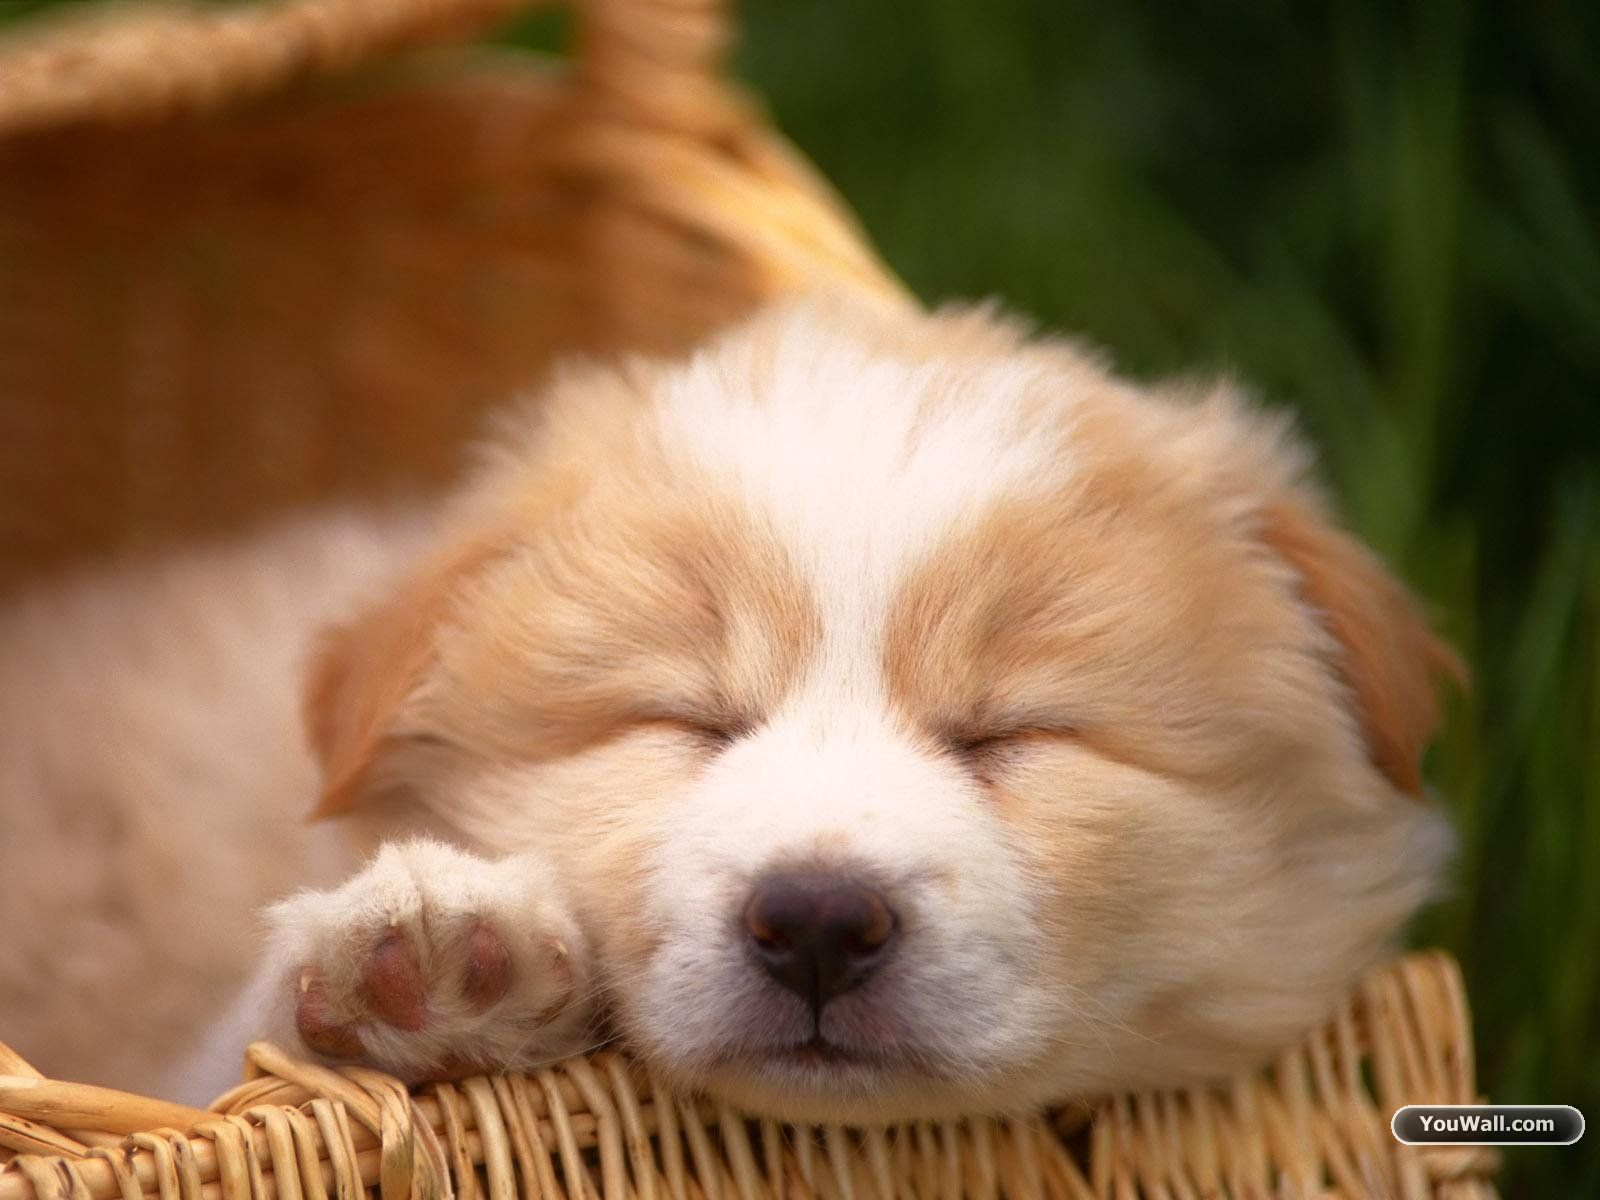 Cute Dog Wallpapers Android Apps on Google Play | HD Wallpapers